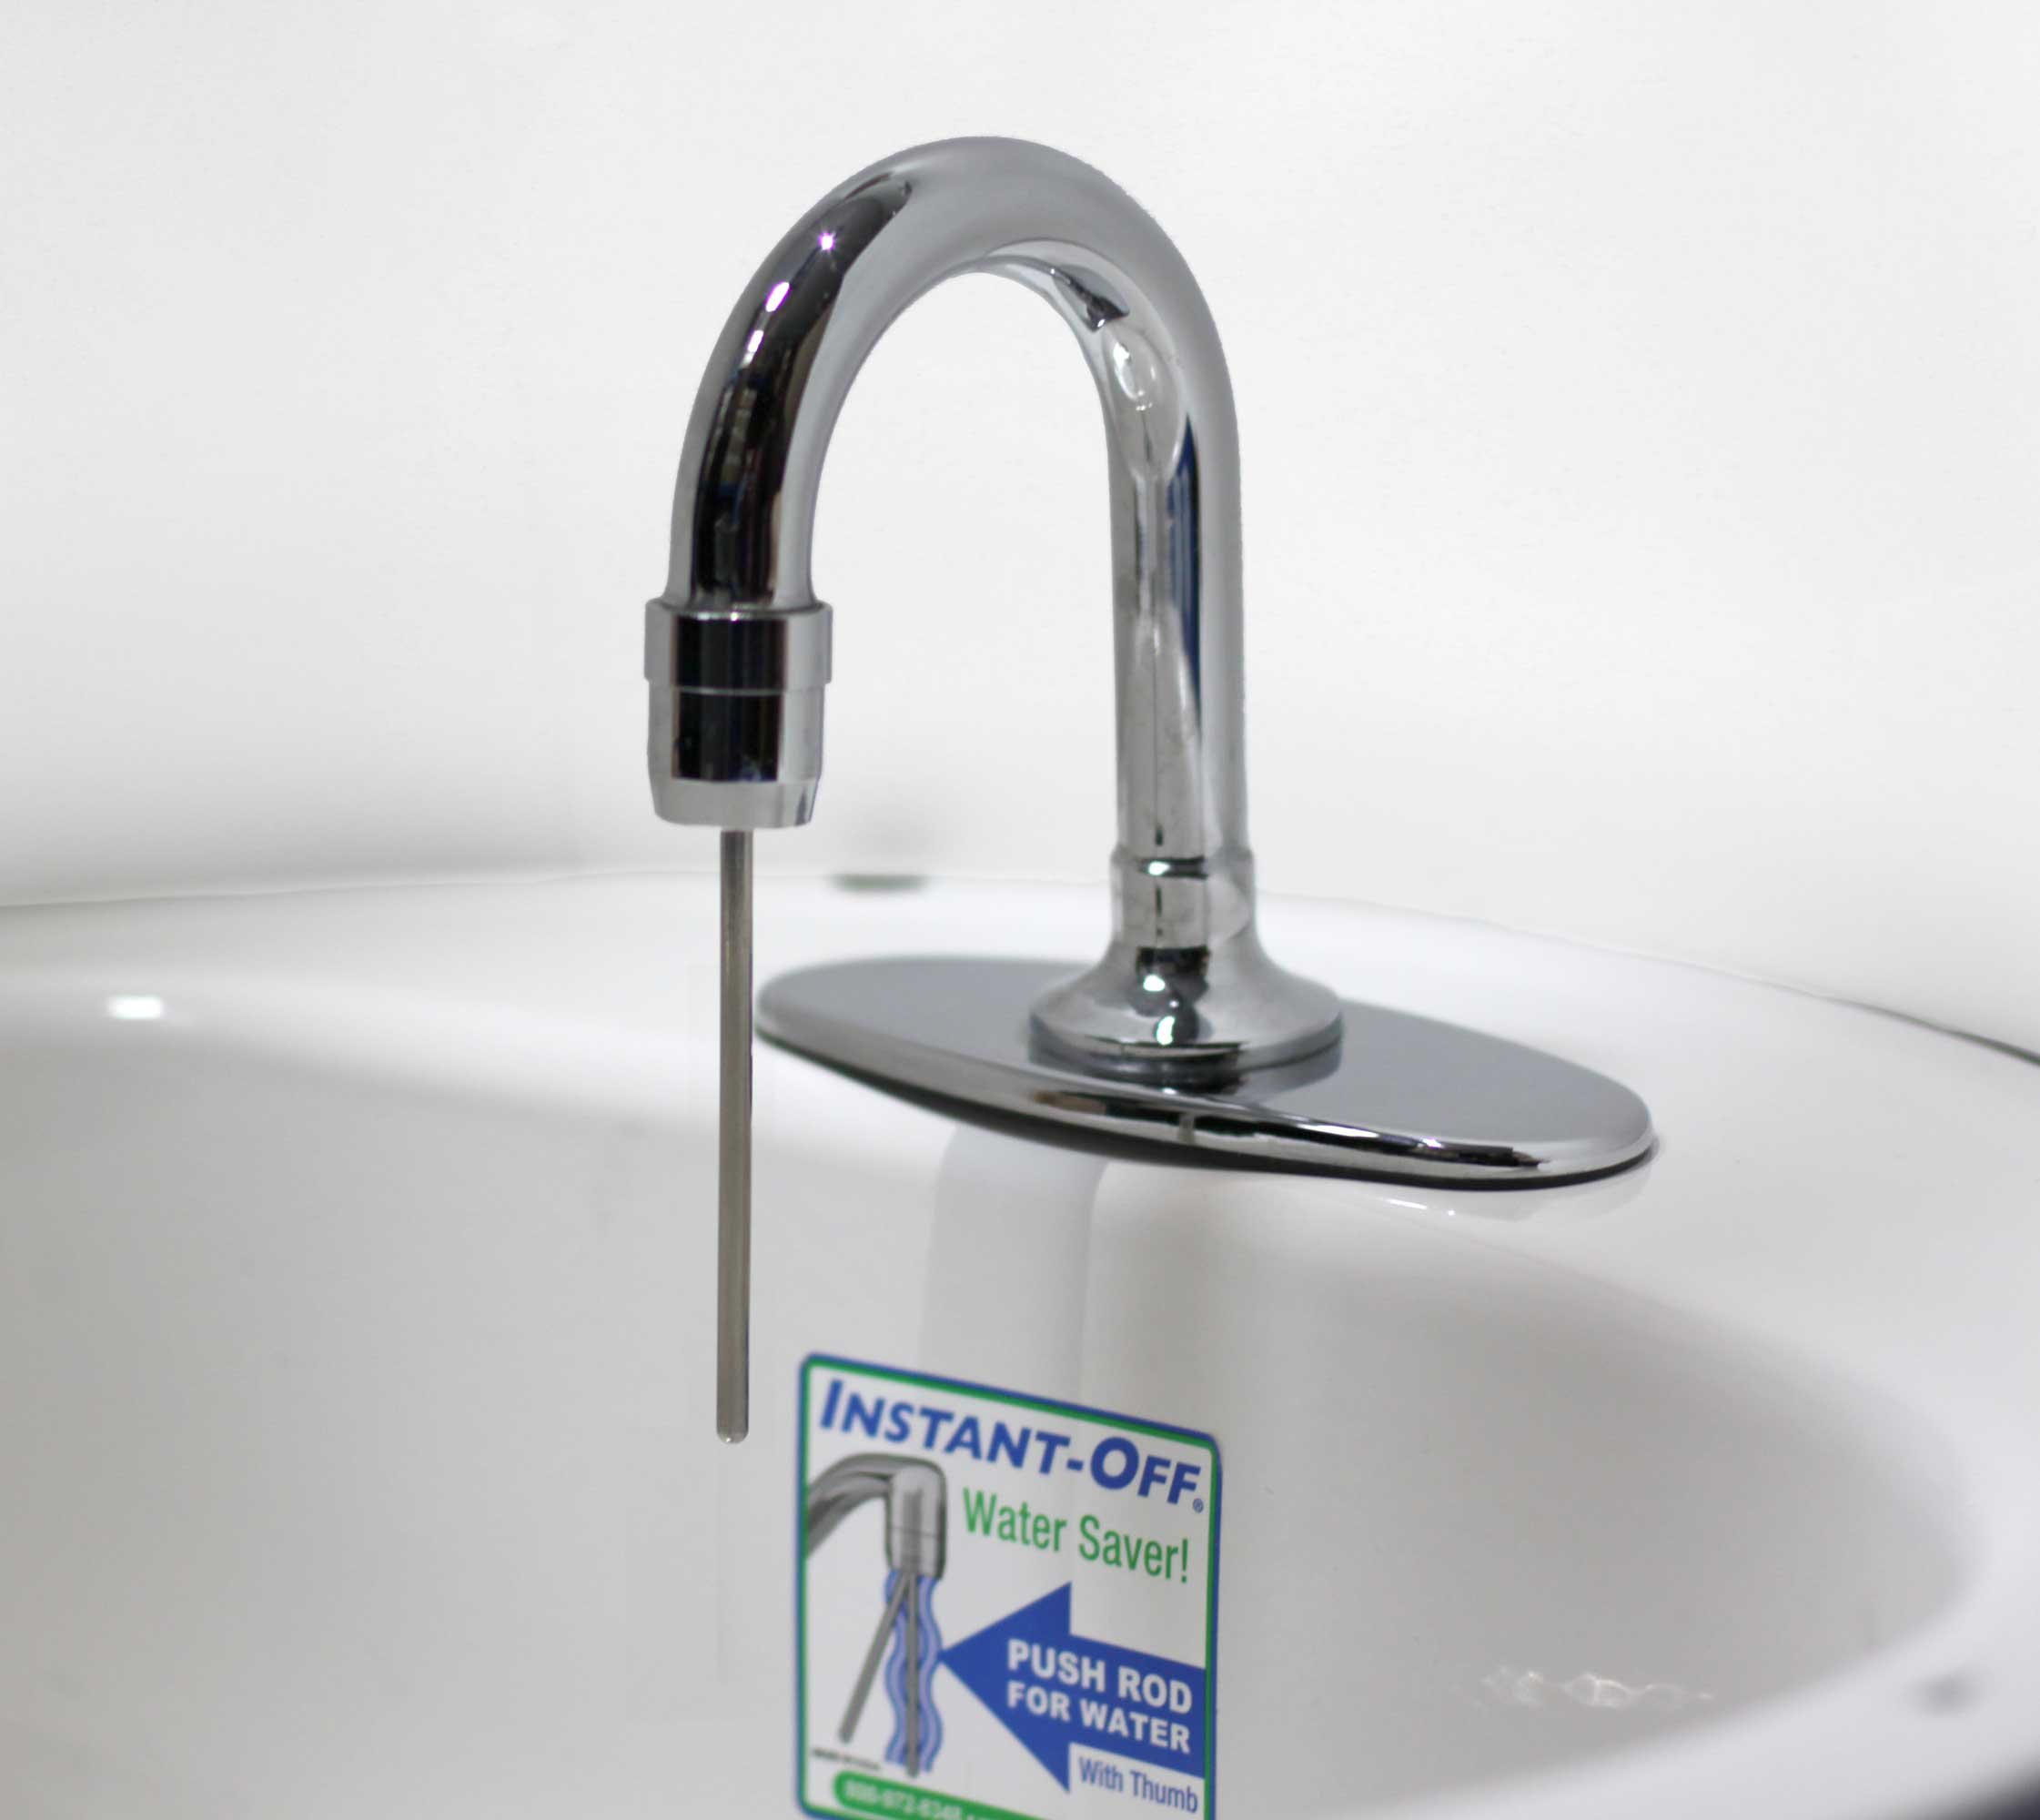 INSTANT-OFF Automatic Hand-Wash Faucet 100 For Small Hand Wash Sinks The Lowest Priced Automatic Faucet in the World!